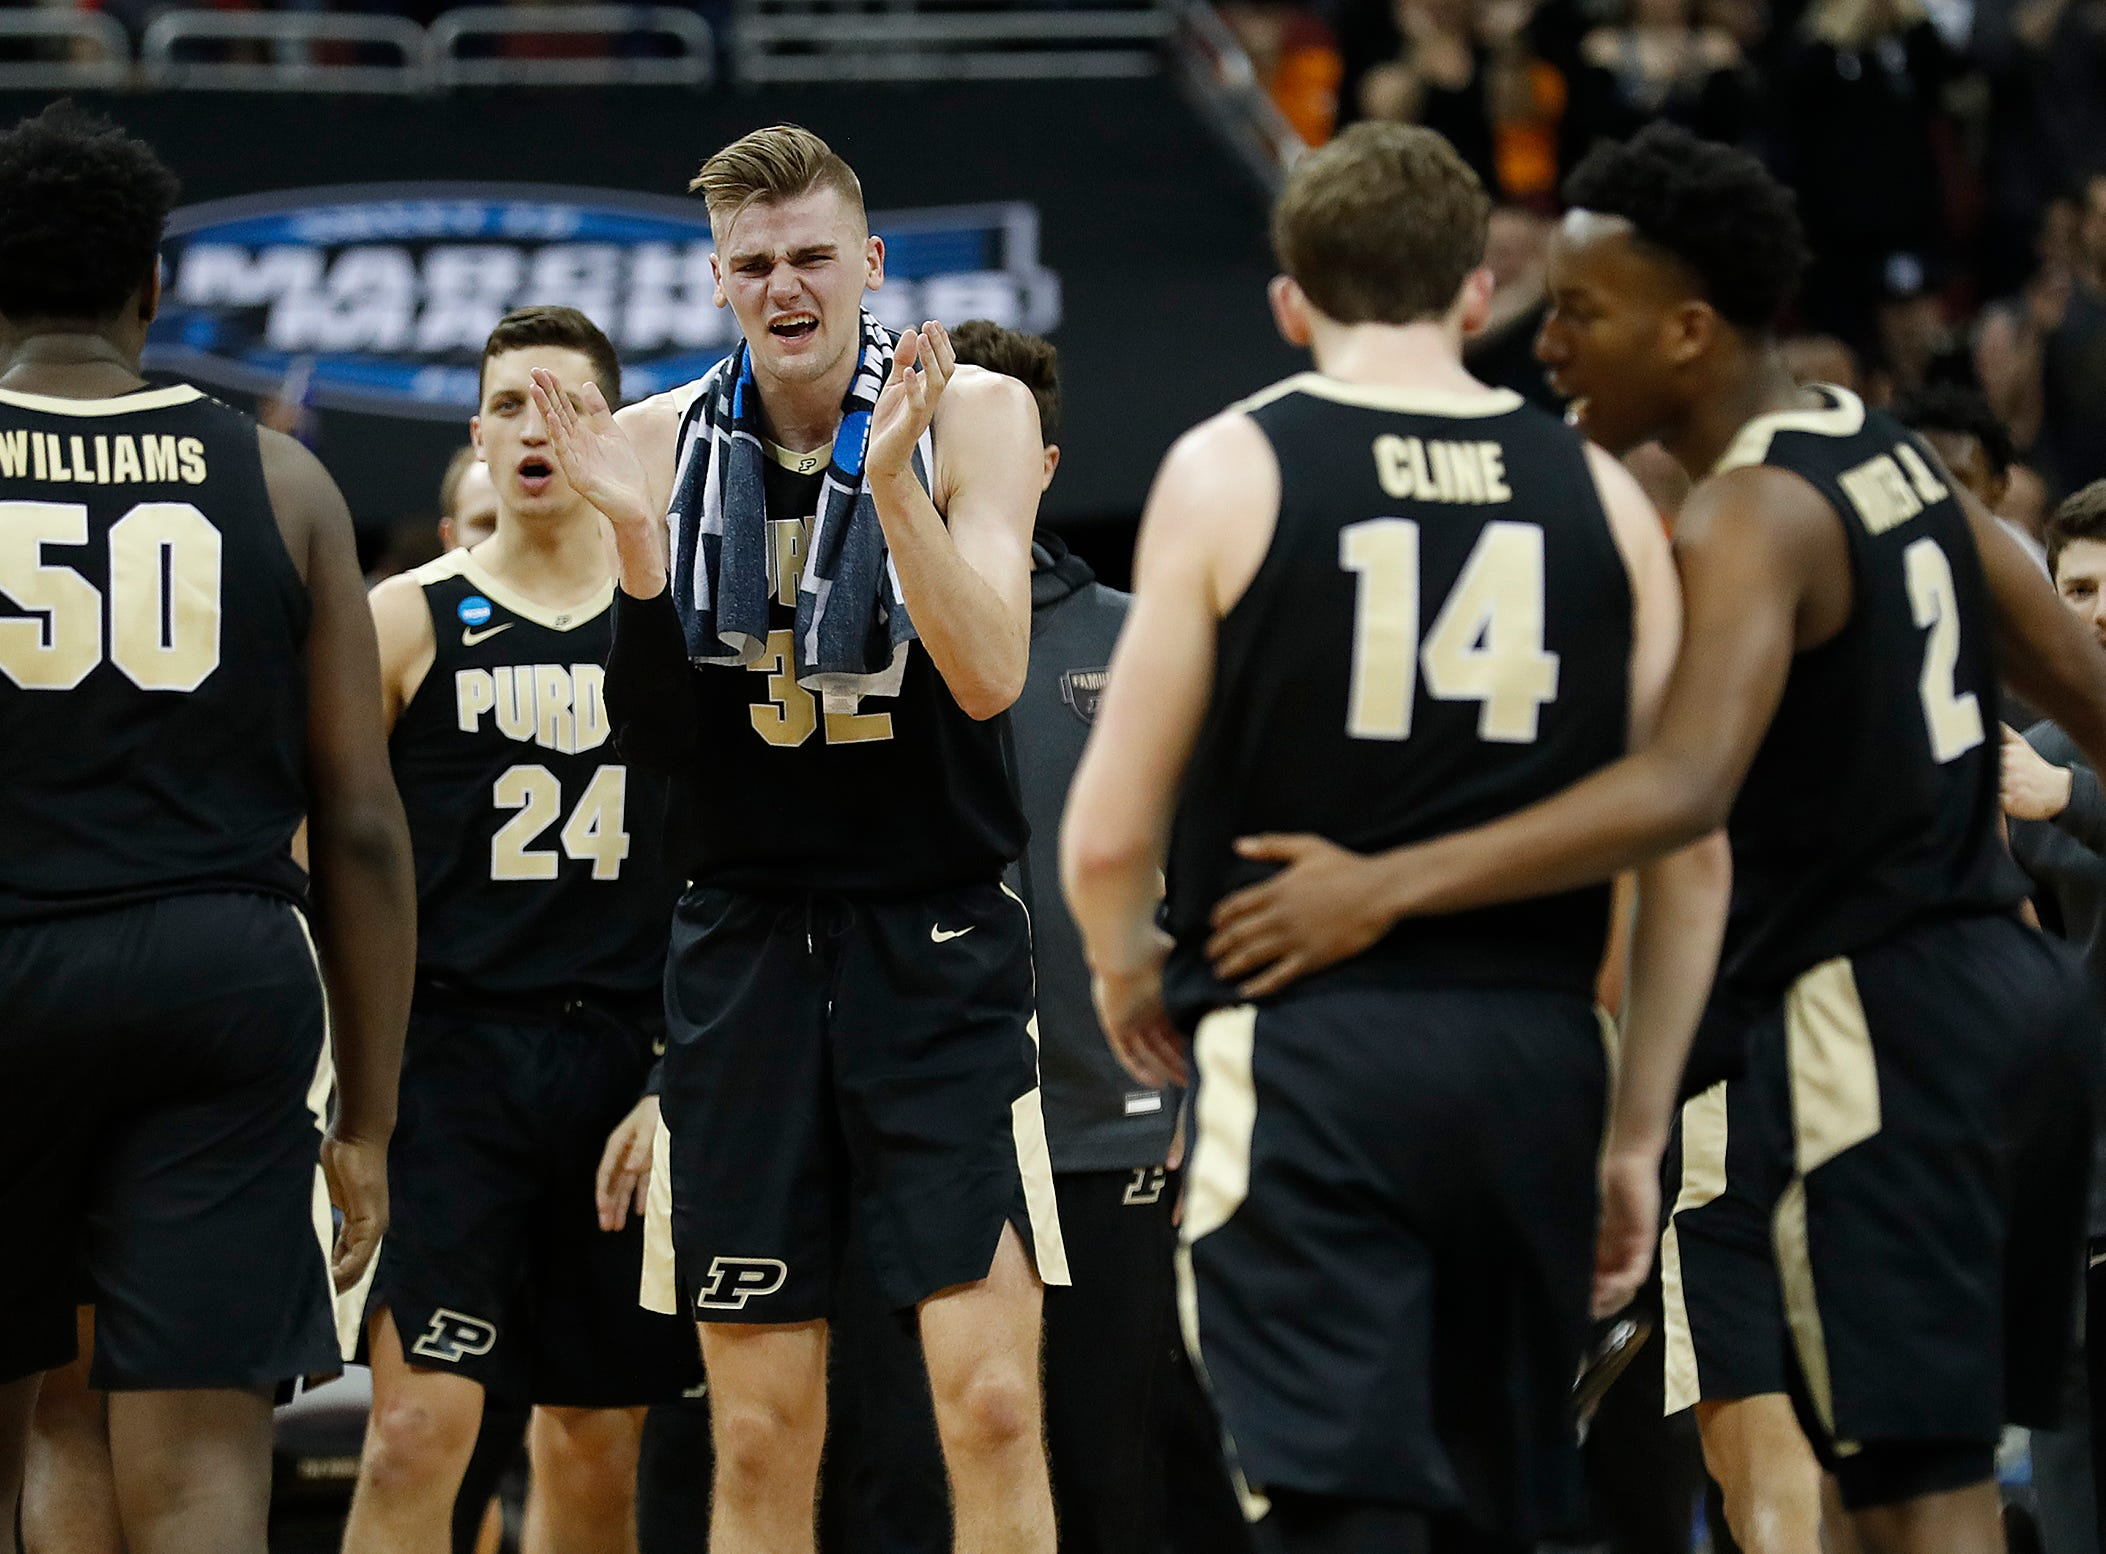 "Purdue Boilermakers center Matt Haarms (32) cheers on his team in the first half of their NCAA Division I Basketball Championship ""Elite 8"" basketball game at the KFC Yum! Center in Louisville, KY., on Saturday, Mar 30, 2019."